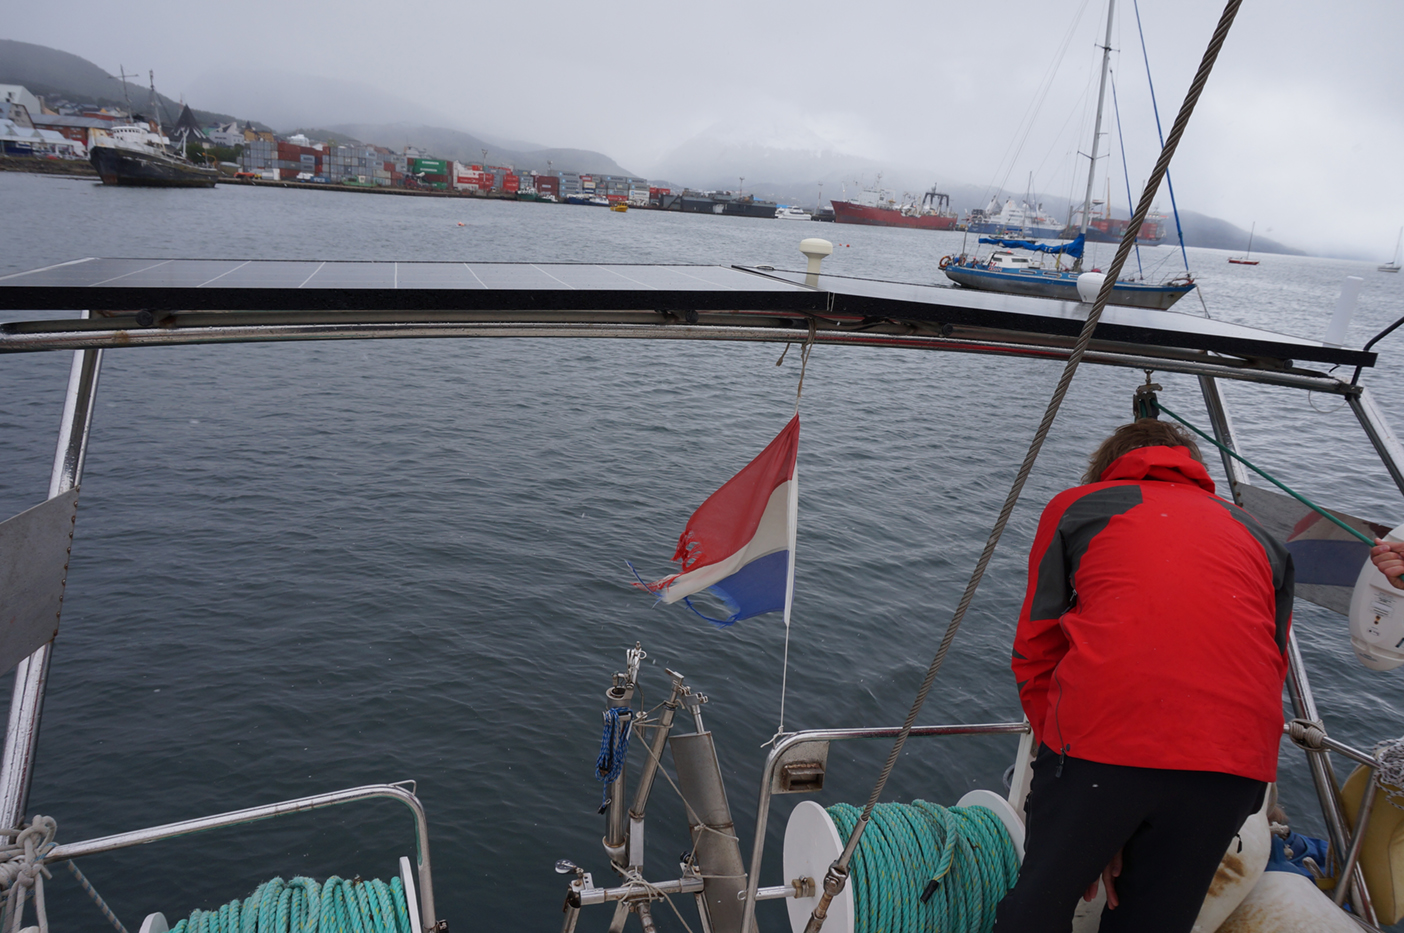 Arrived in the calm waters of Ushuaia's port.